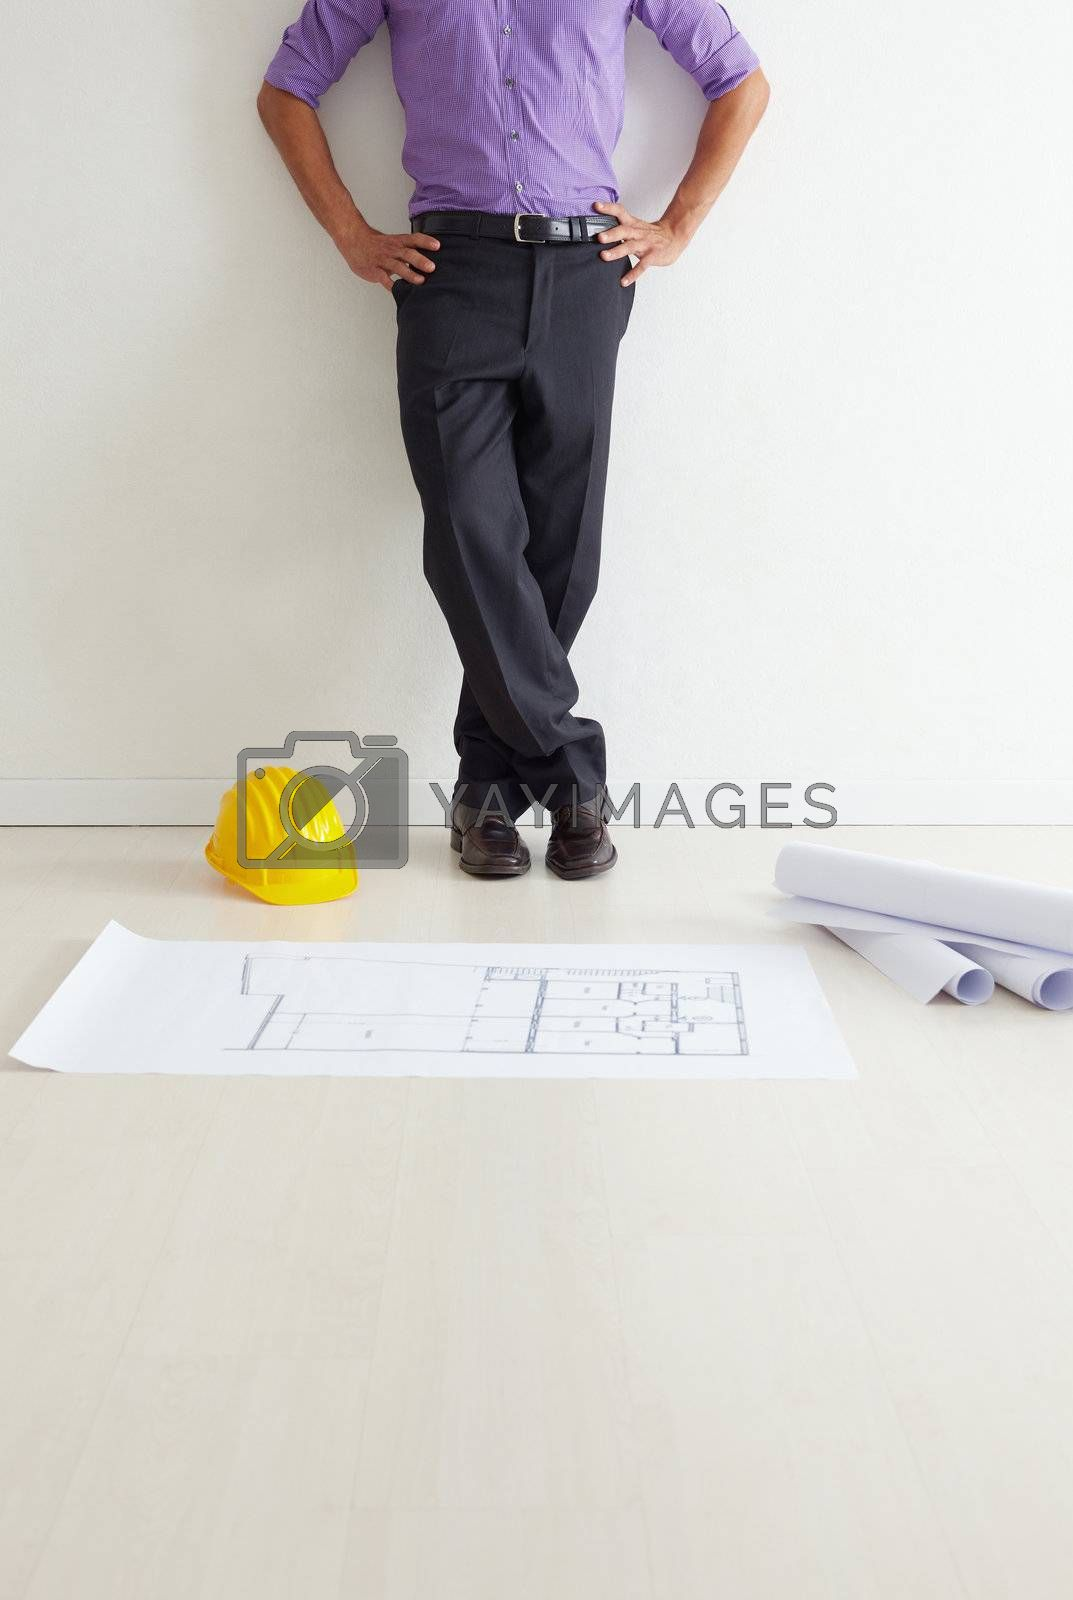 cropped view of mid adult architect leaning on wall and blueprints on floor. Copy space